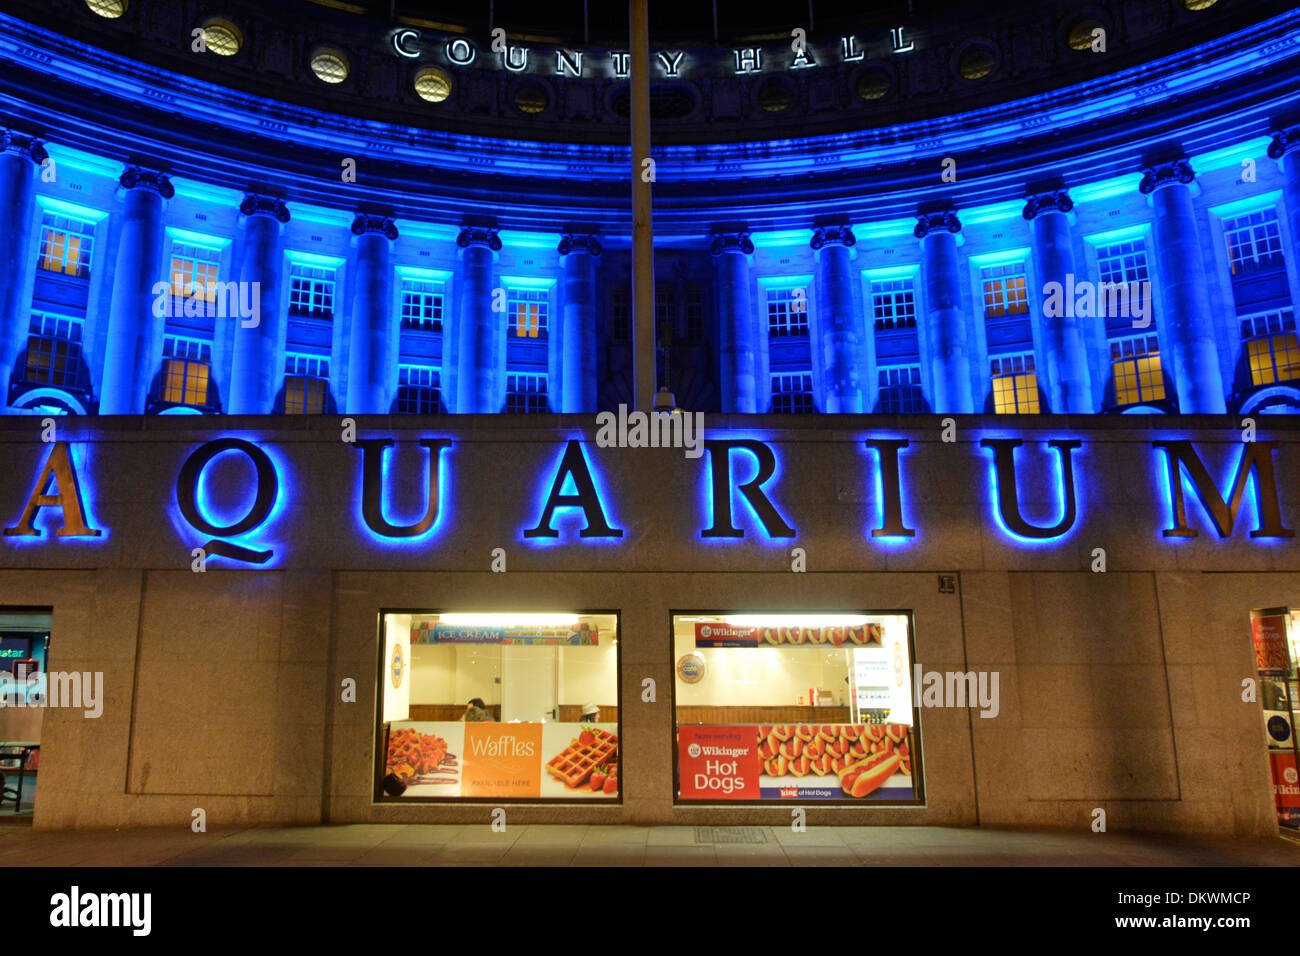 County Hall and London Aquarium with blue lighting - Stock Image